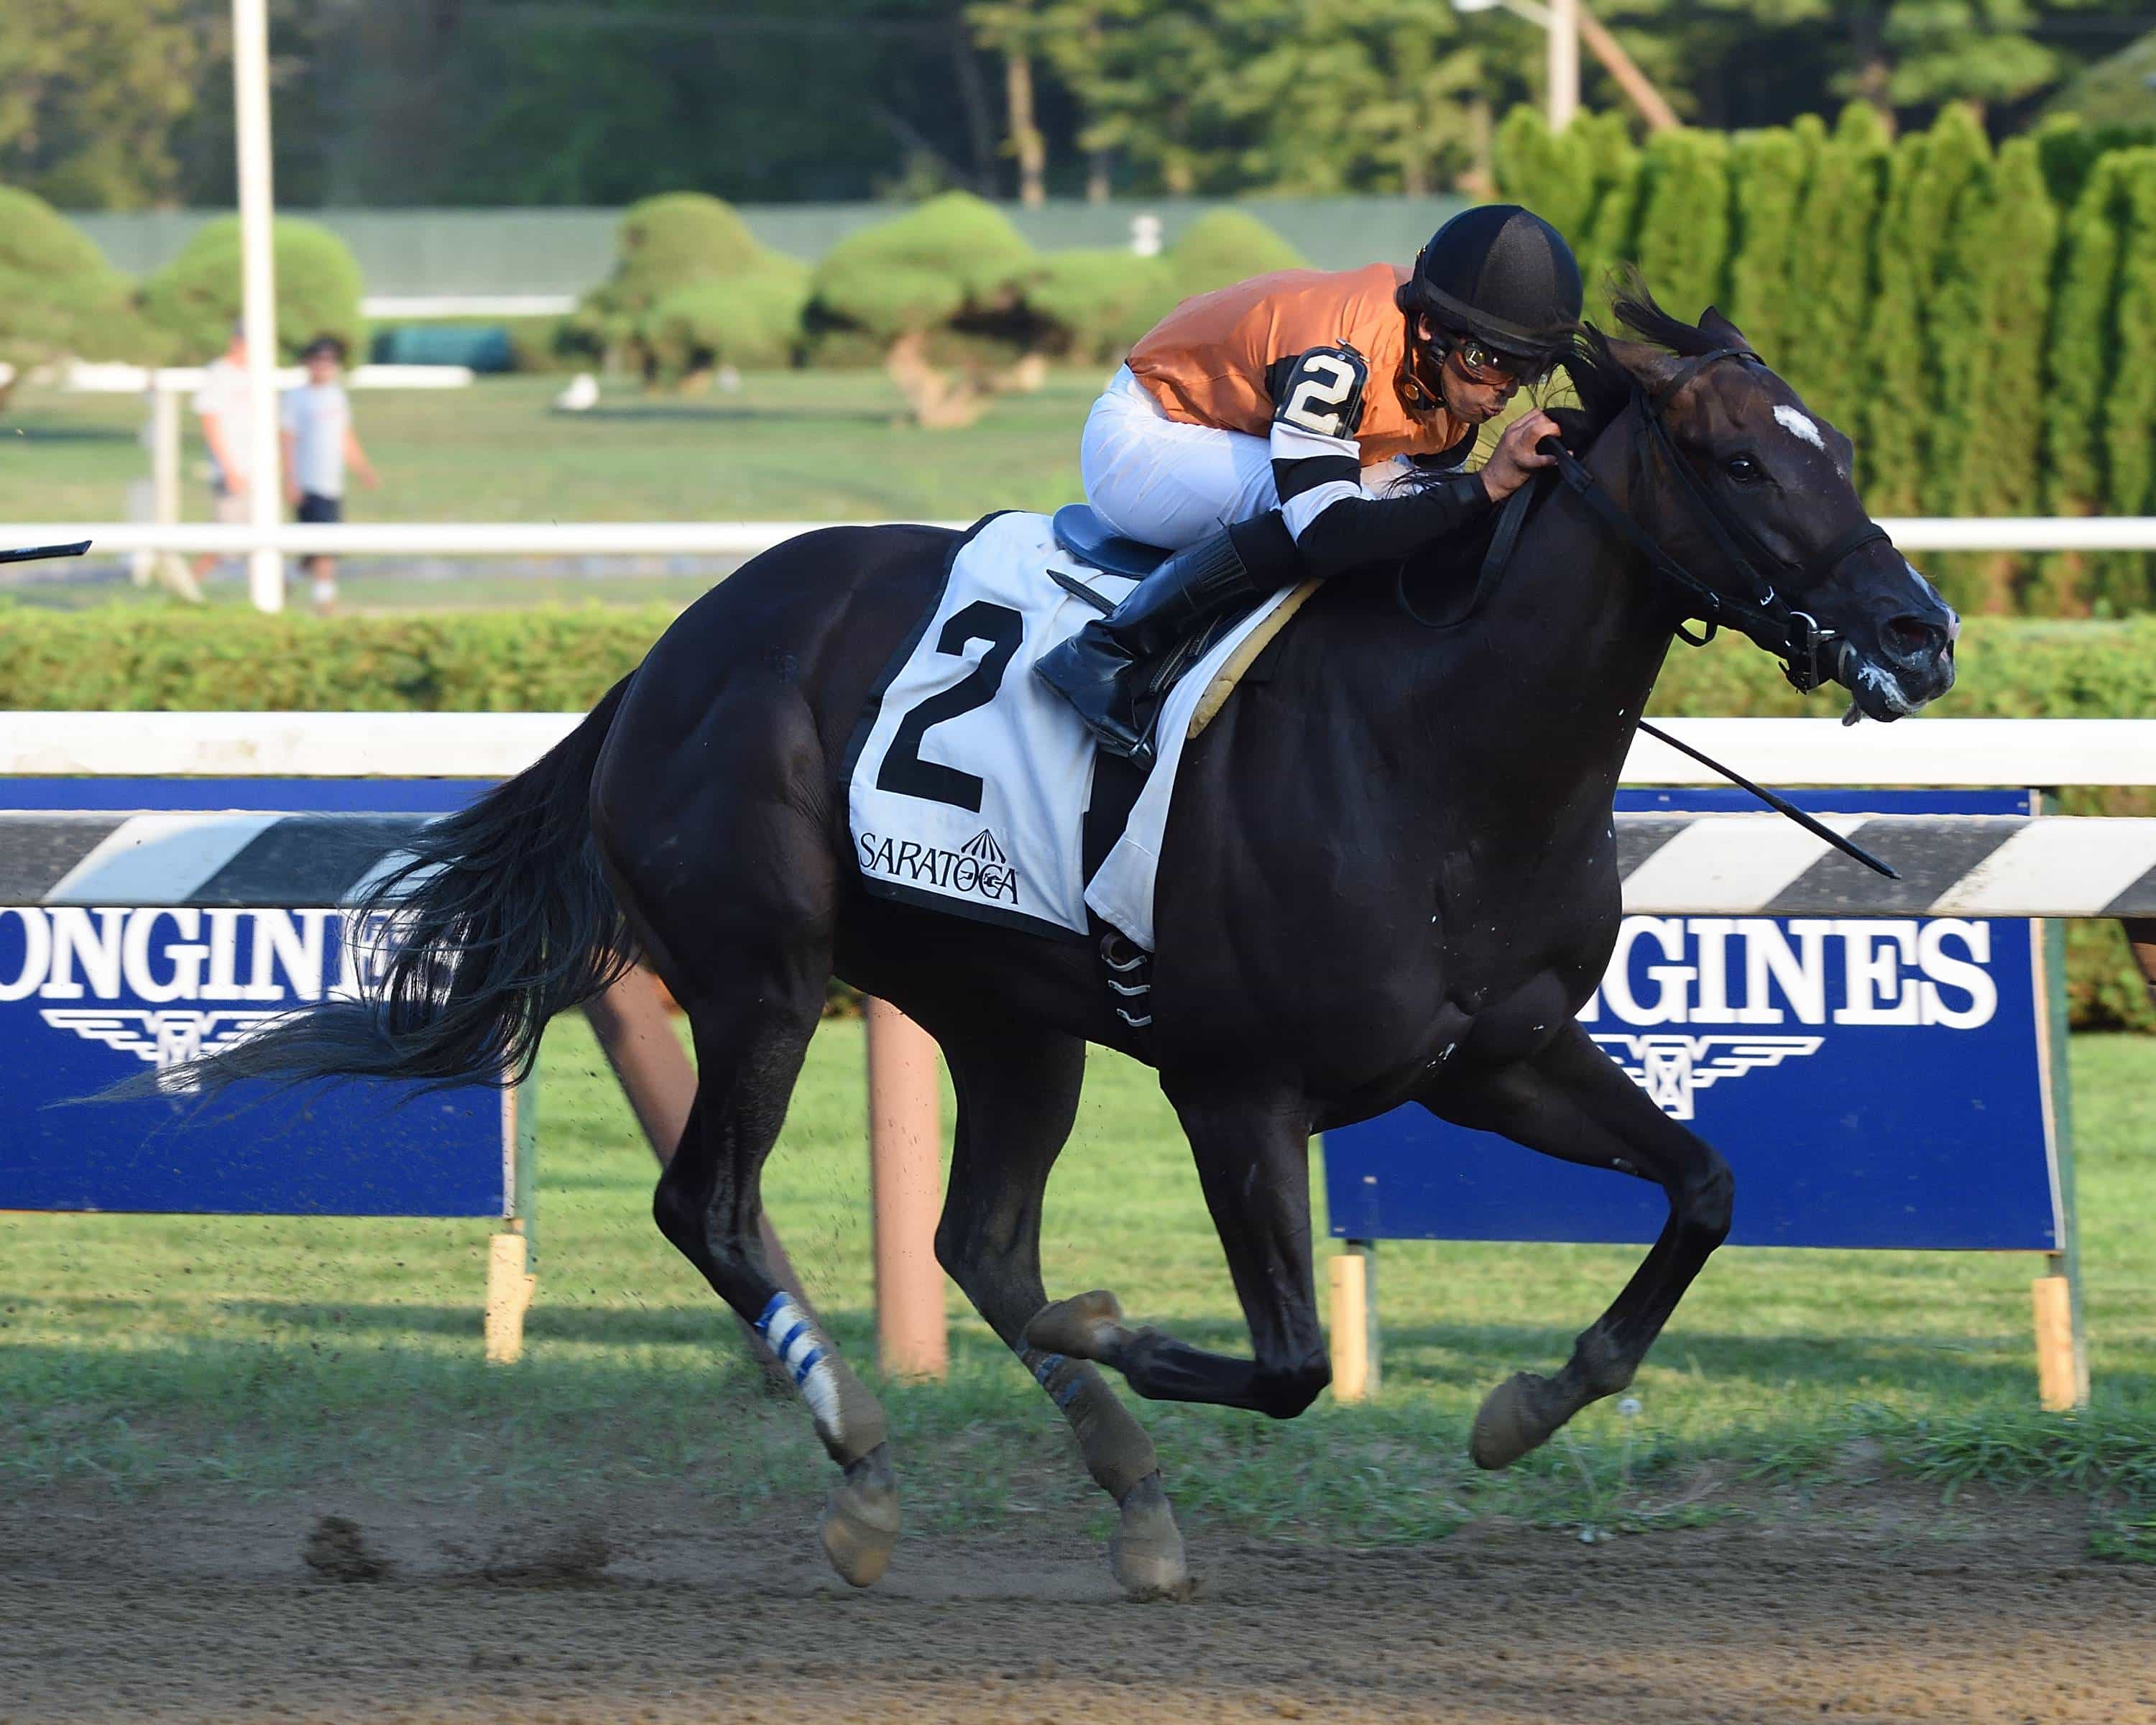 Lucy N Ethel wins G2 Prioress - NYRA